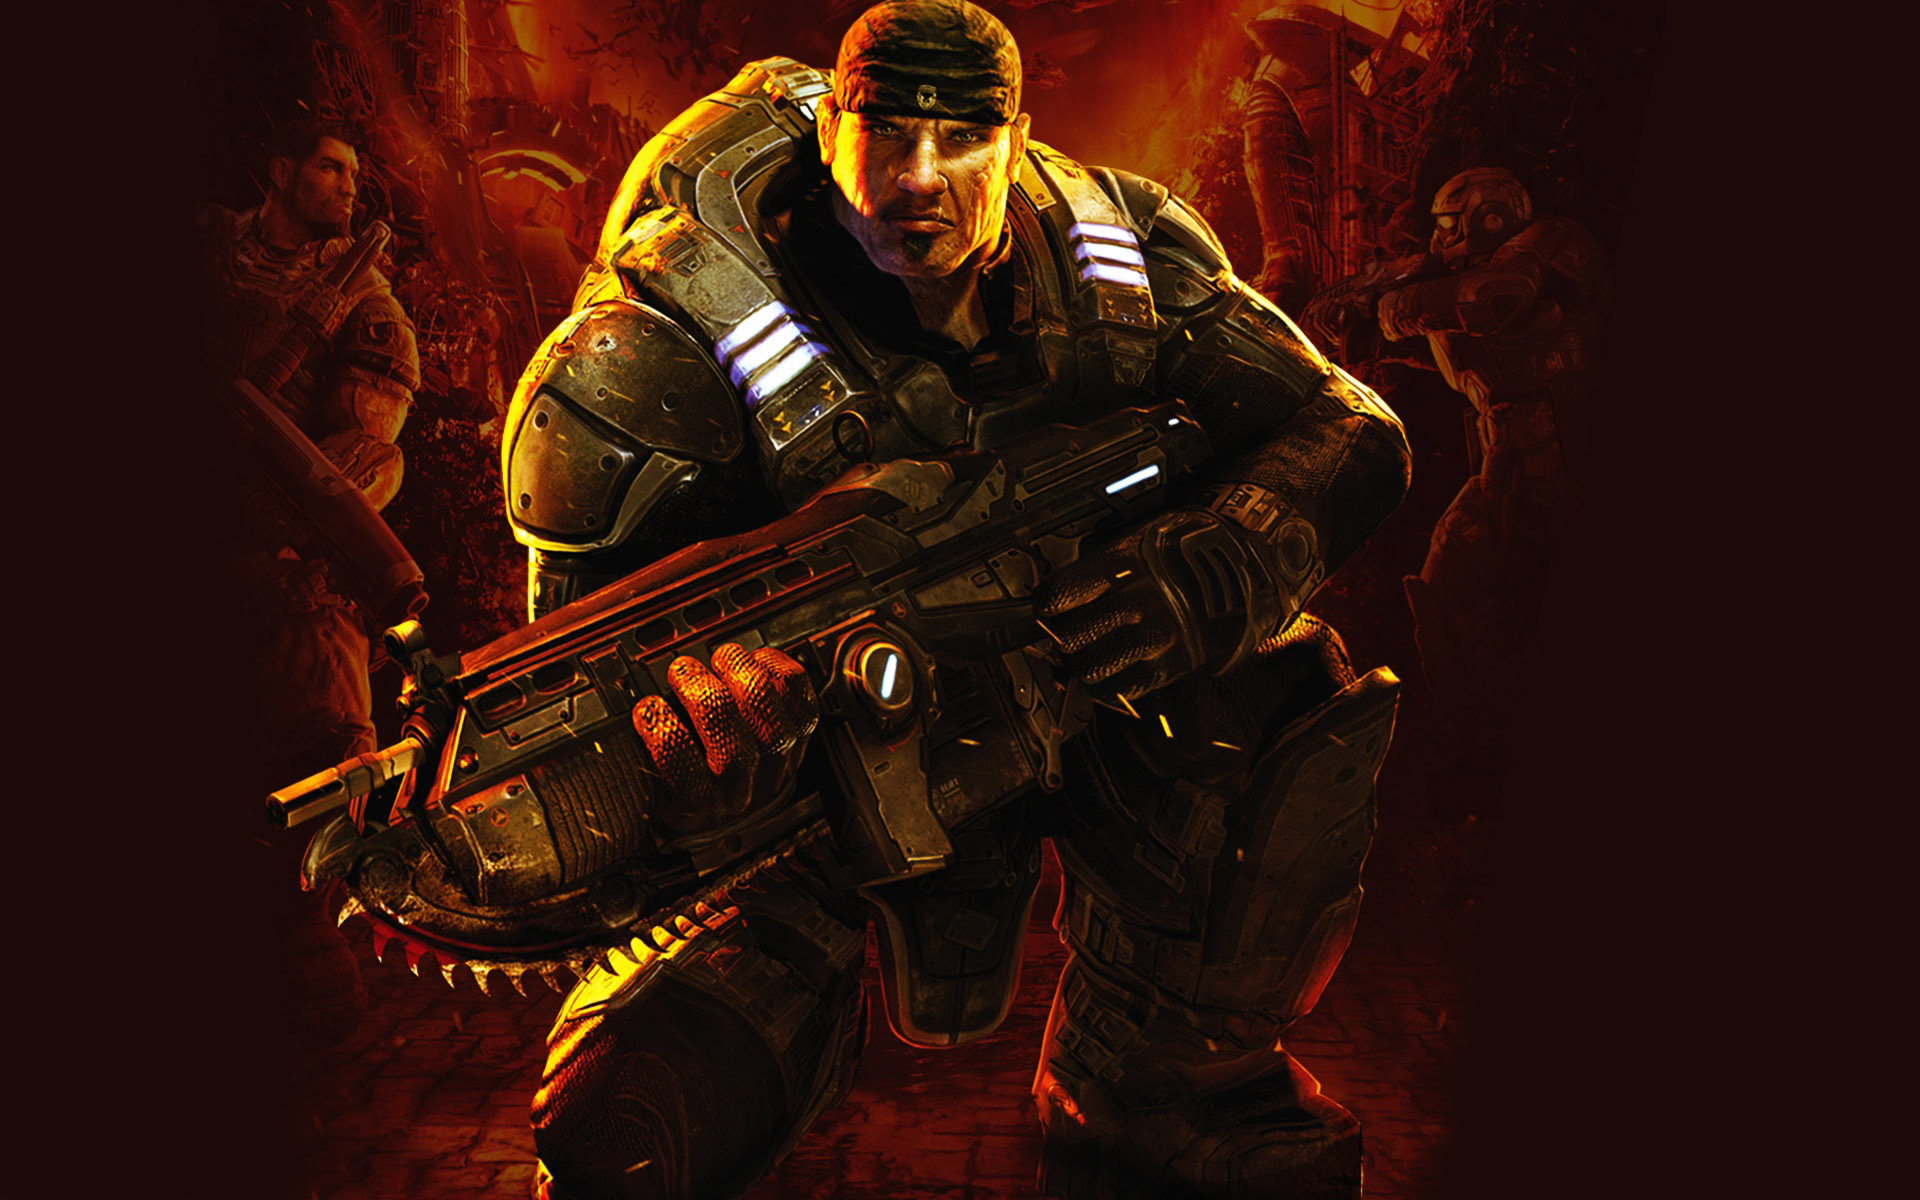 Gears Of War 3 Hd Wallpapers For Android: Gears Of War Wallpapers 1920x1200